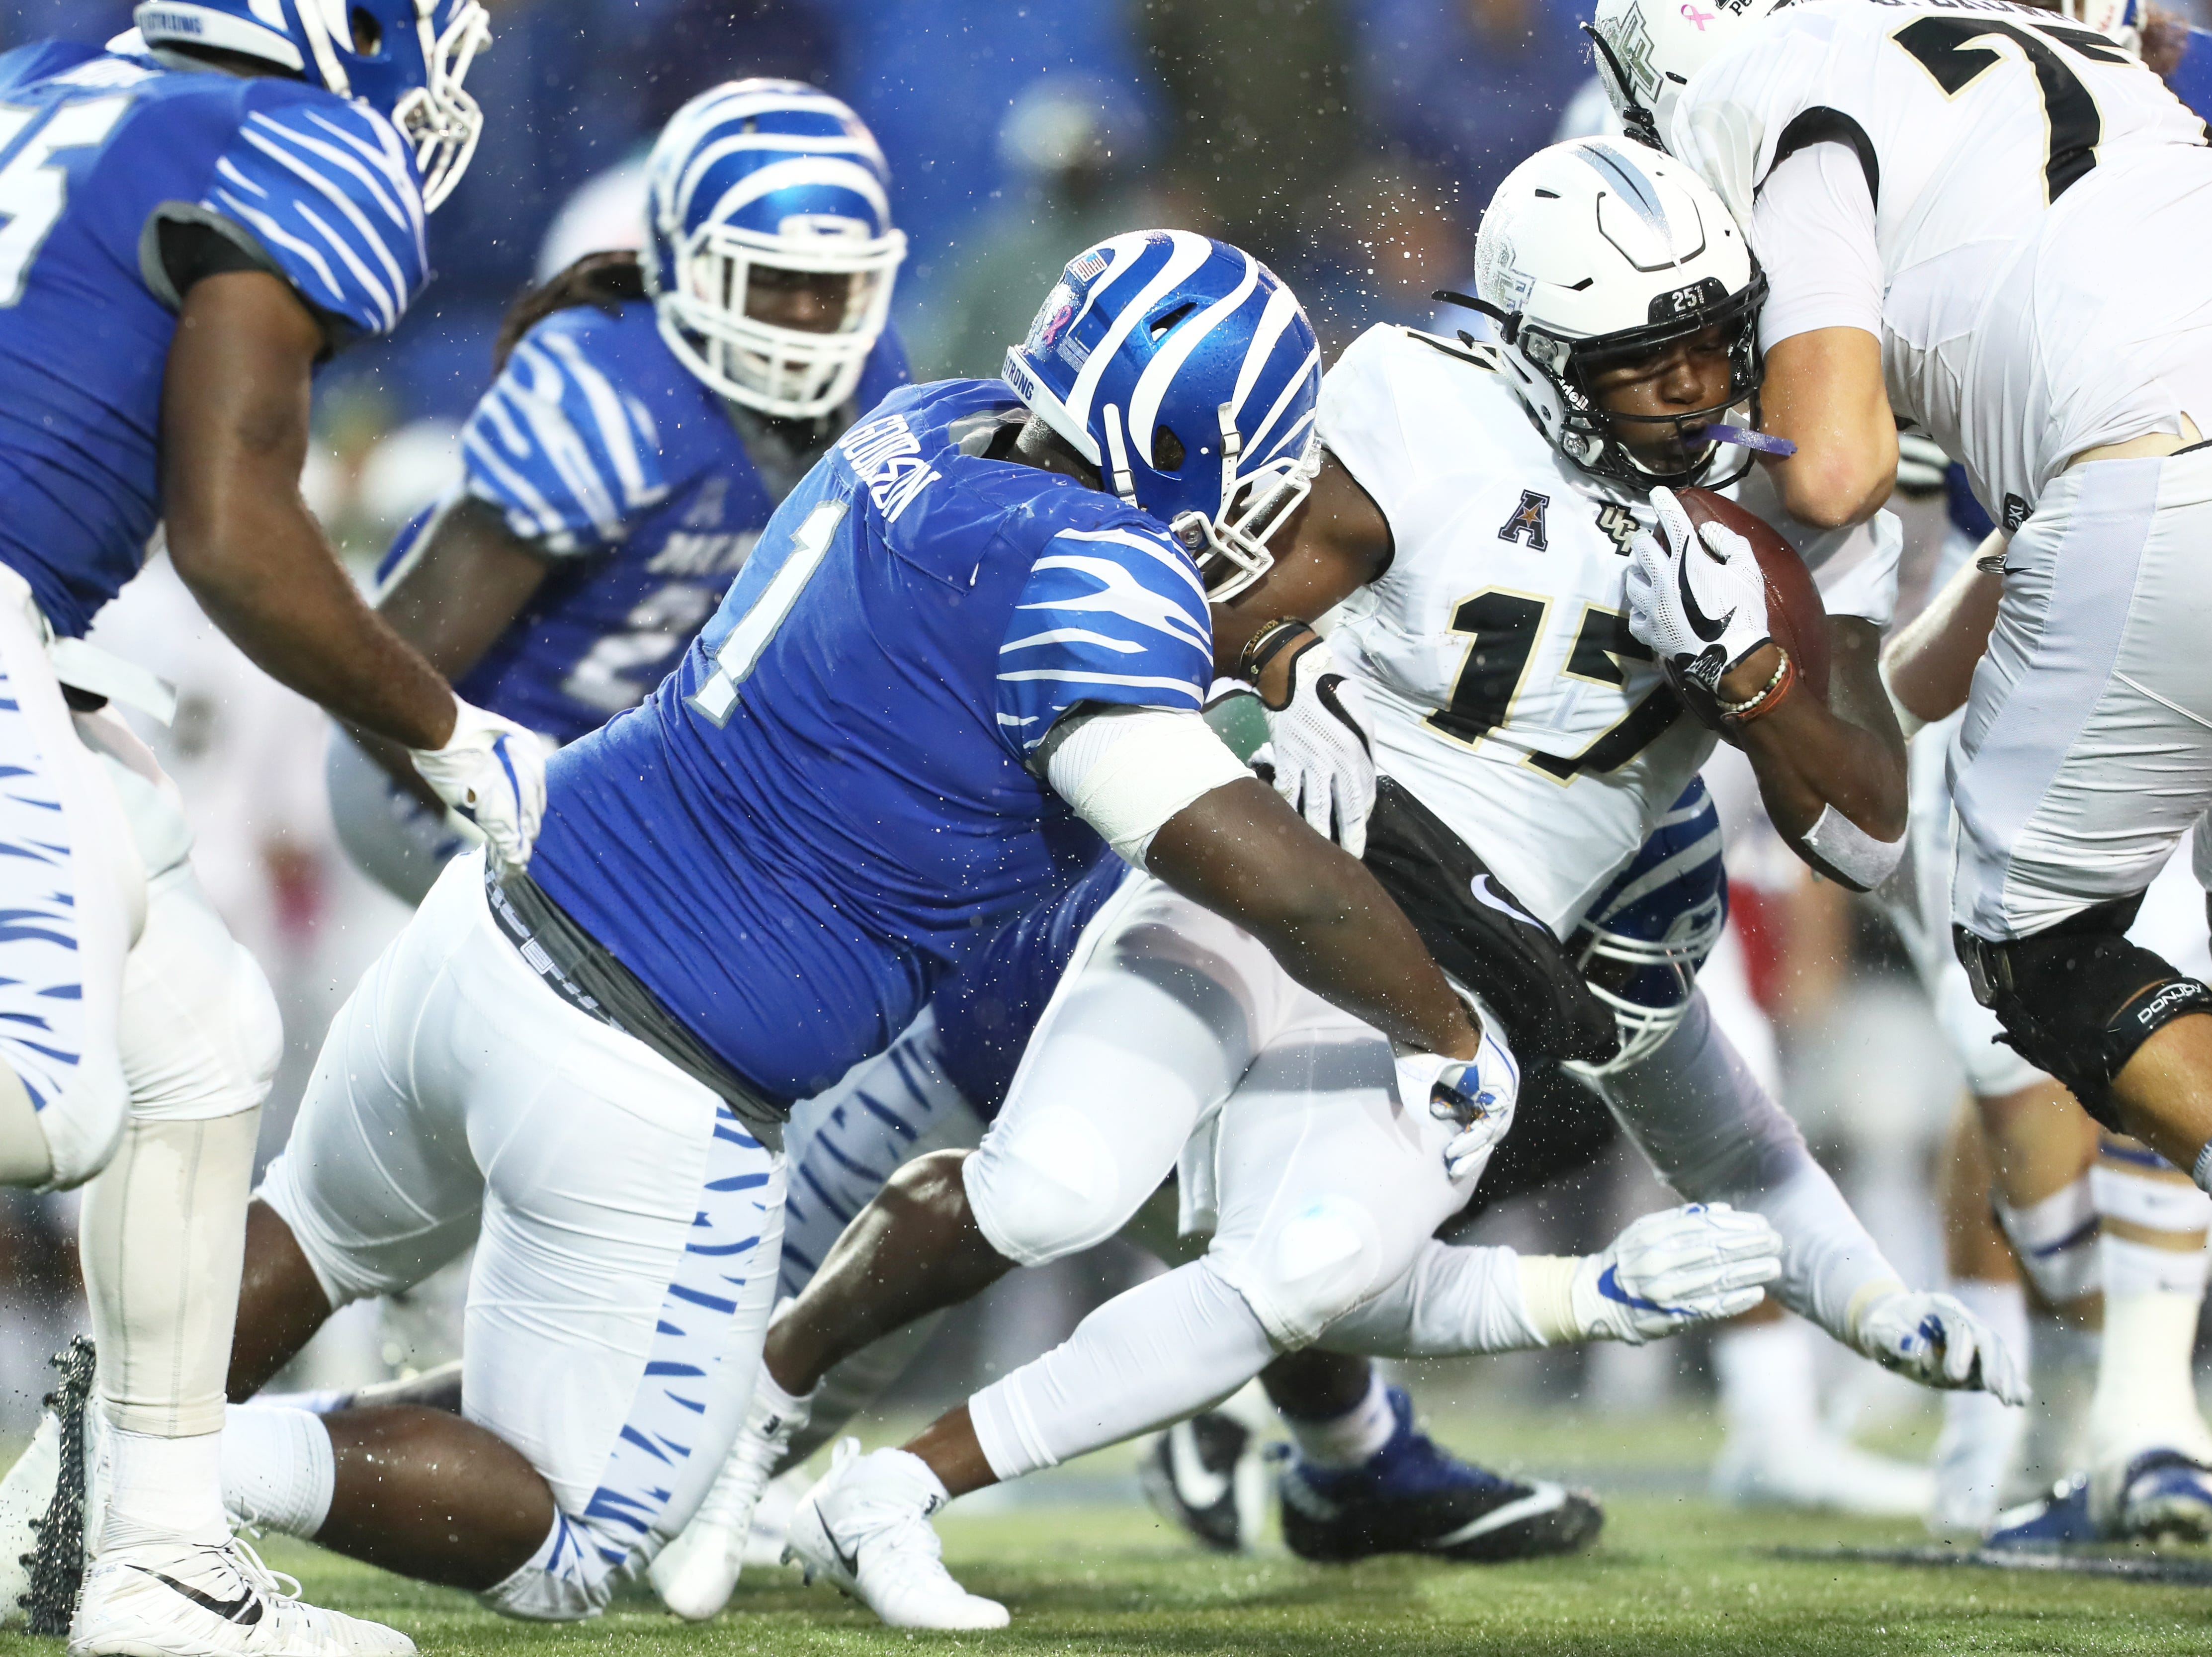 UCF's Marlon Williams drags along Memphis' O'Bryan Goodson for a first down during their game at the Liberty Bowl in Memphis, Tenn., Saturday, October 13, 2018.